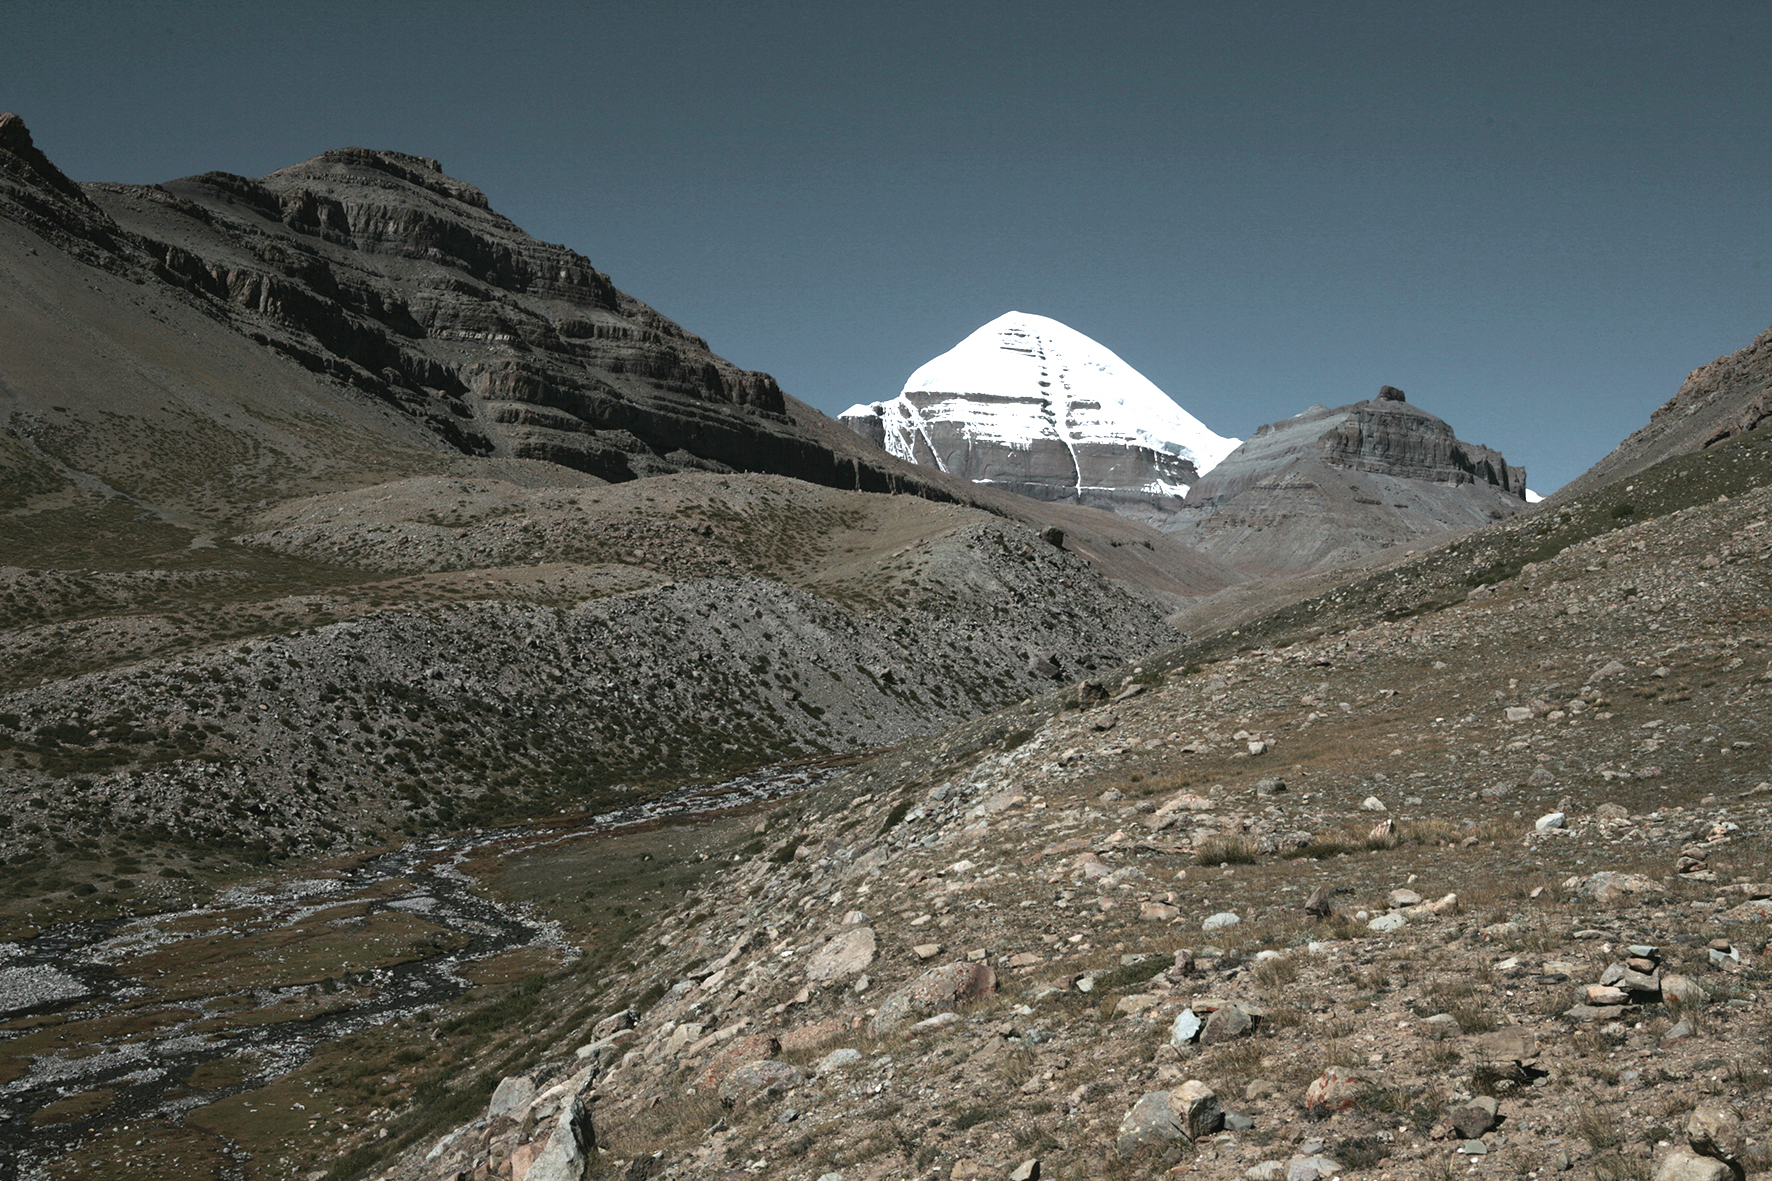 Kora Mt. Kailash Expedition 2007 Nr. 04 / Archival print on paper